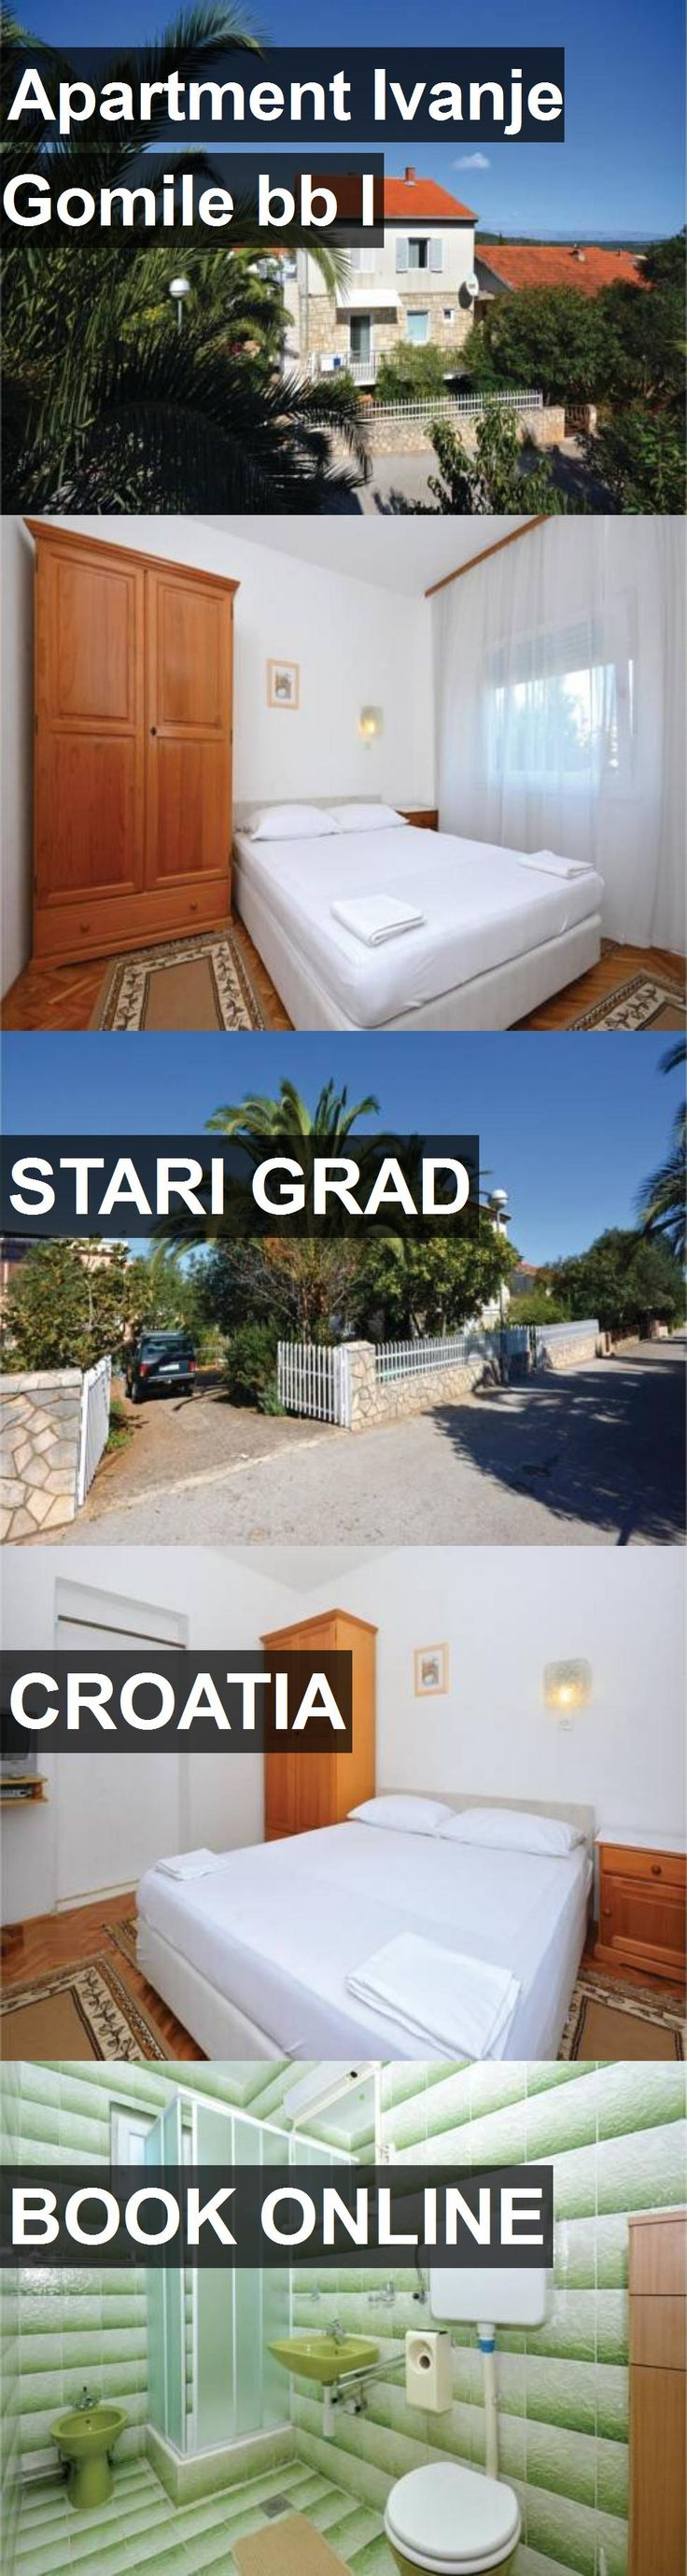 Apartment Ivanje Gomile bb I in Stari Grad, Croatia. For more information, photos, reviews and best prices please follow the link. #Croatia #StariGrad #travel #vacation #apartment